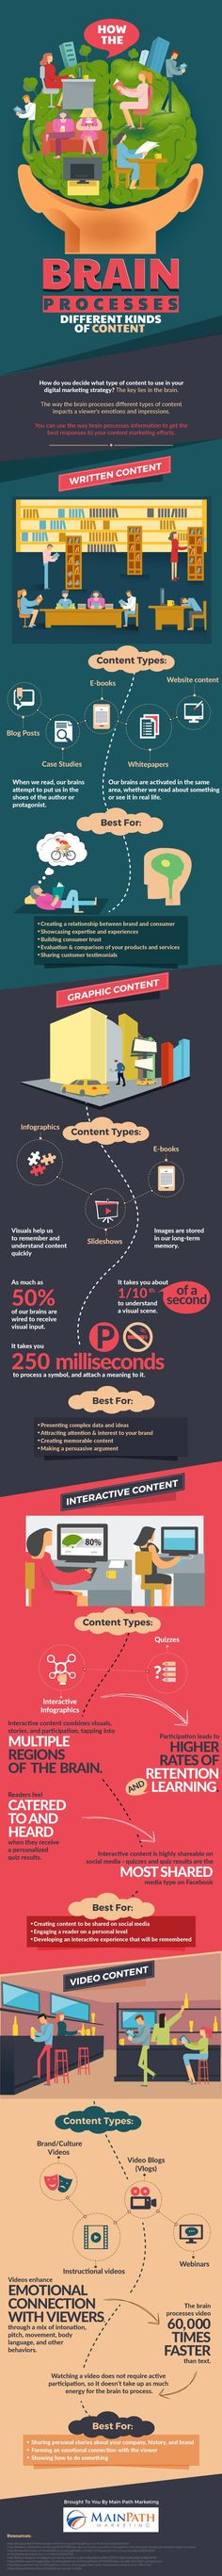 How Our Brain Processes Different Kinds of Content - #Infographic